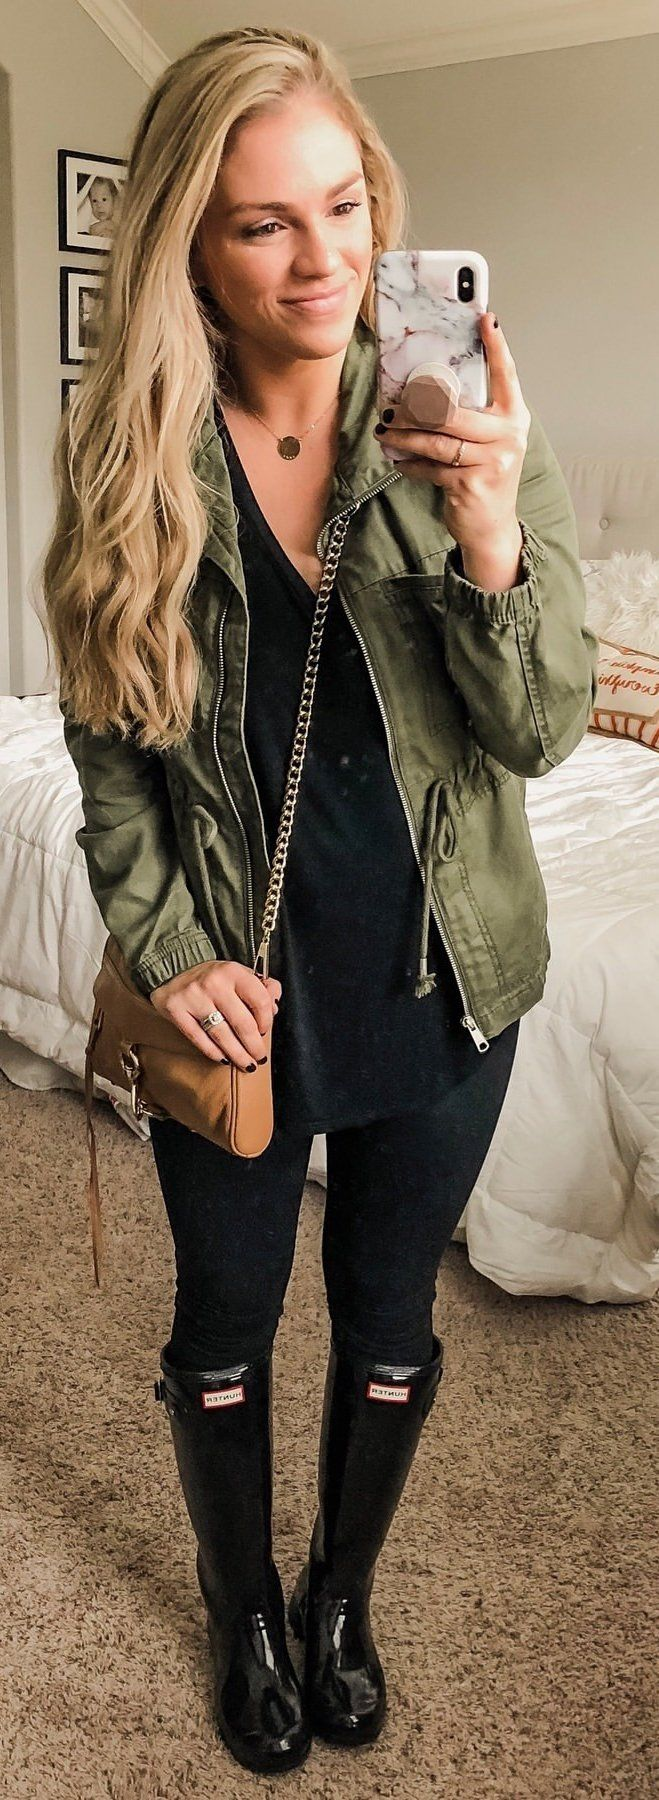 black plunging neckline shirt and green zip-up jacket